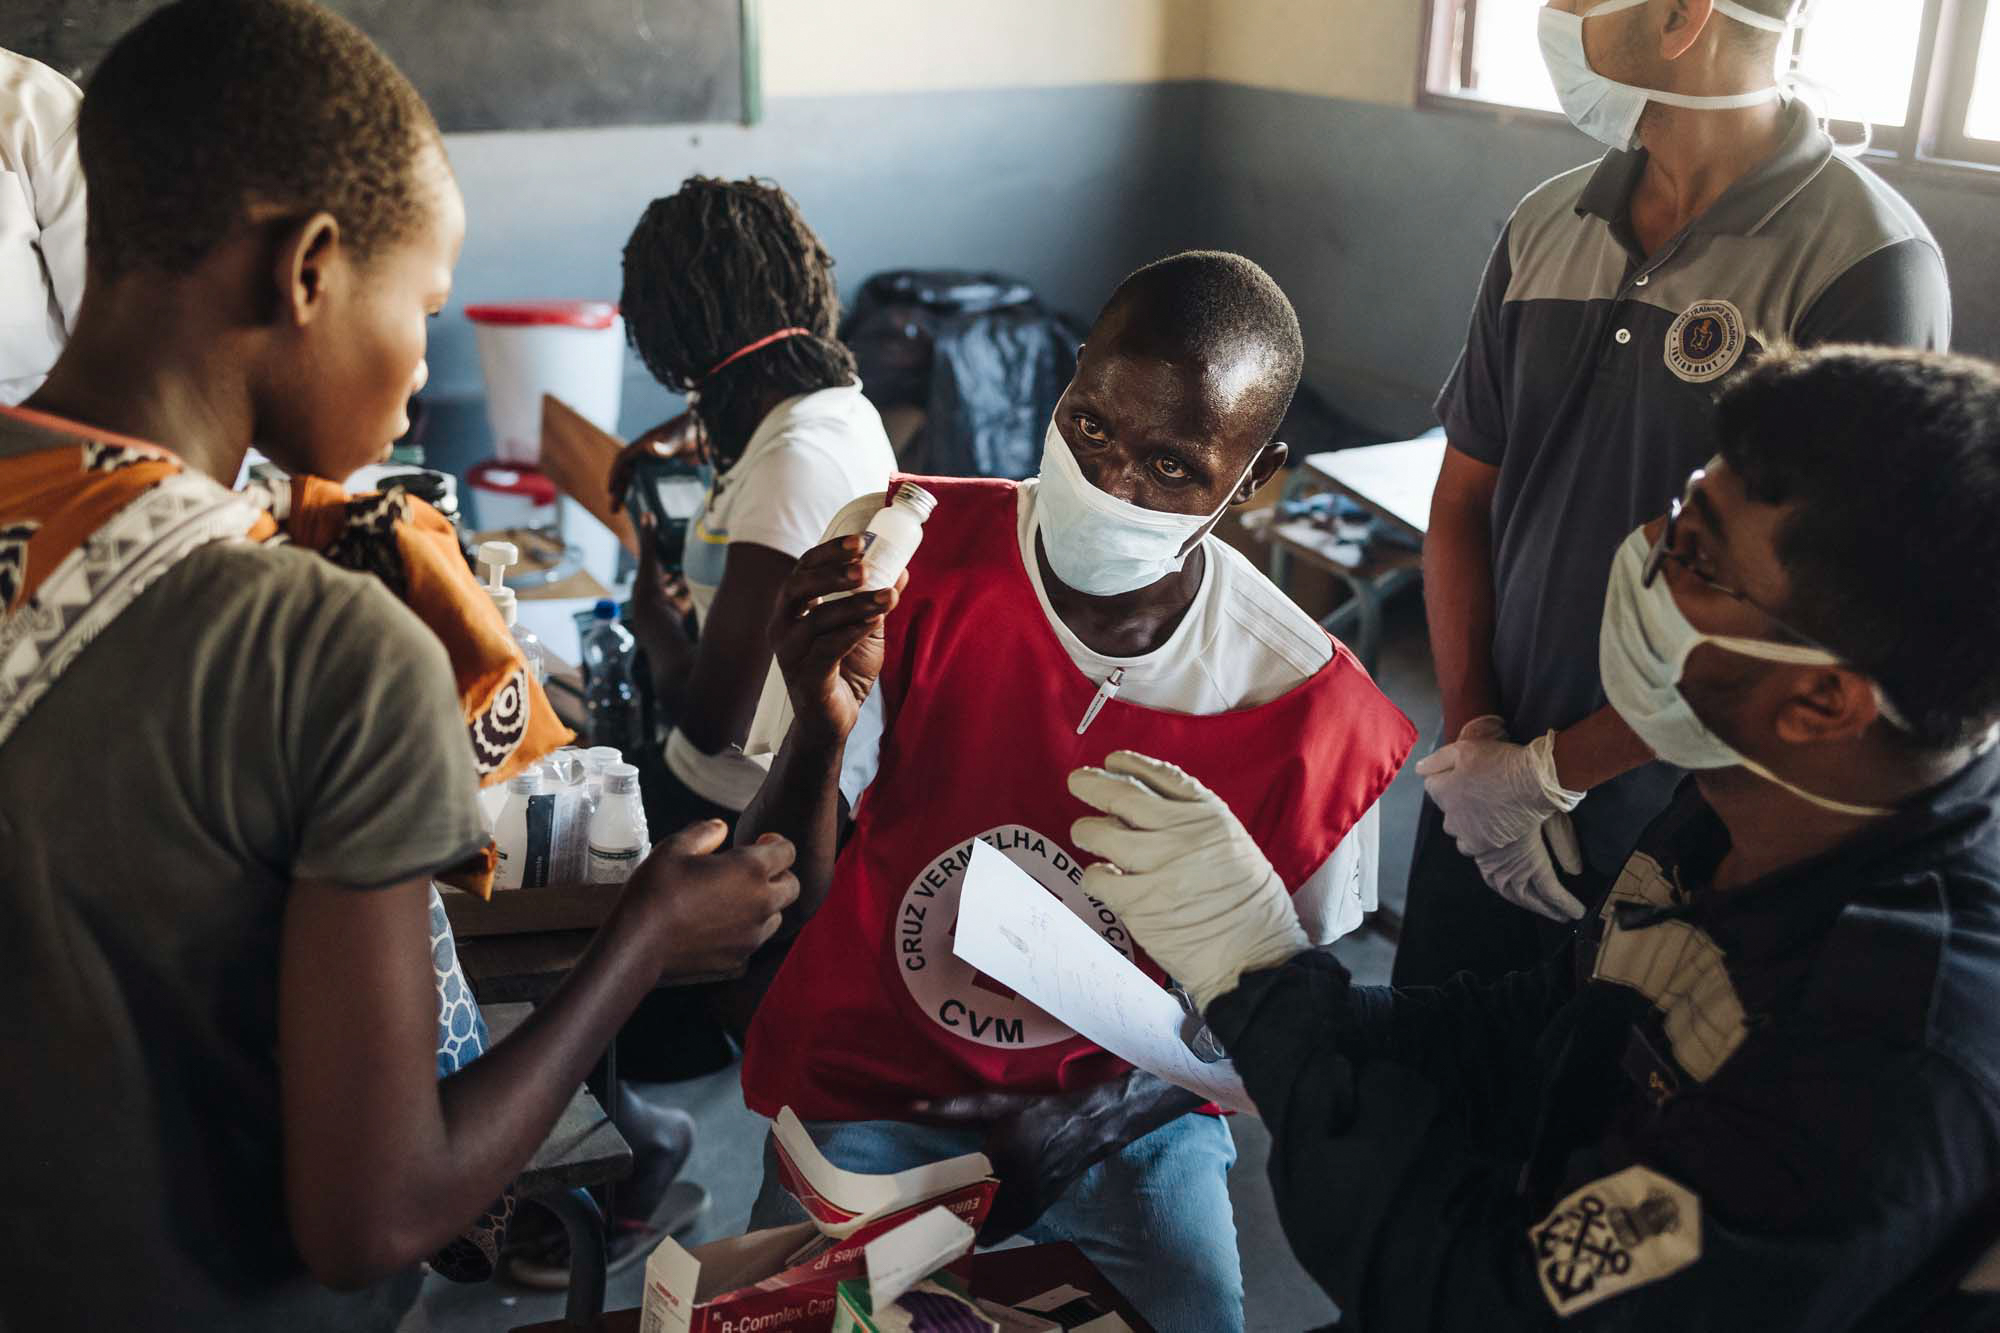 A Red Cross Support worker administers medical aid to those affected by Cyclone Idai inside of a small pop-up aid center.